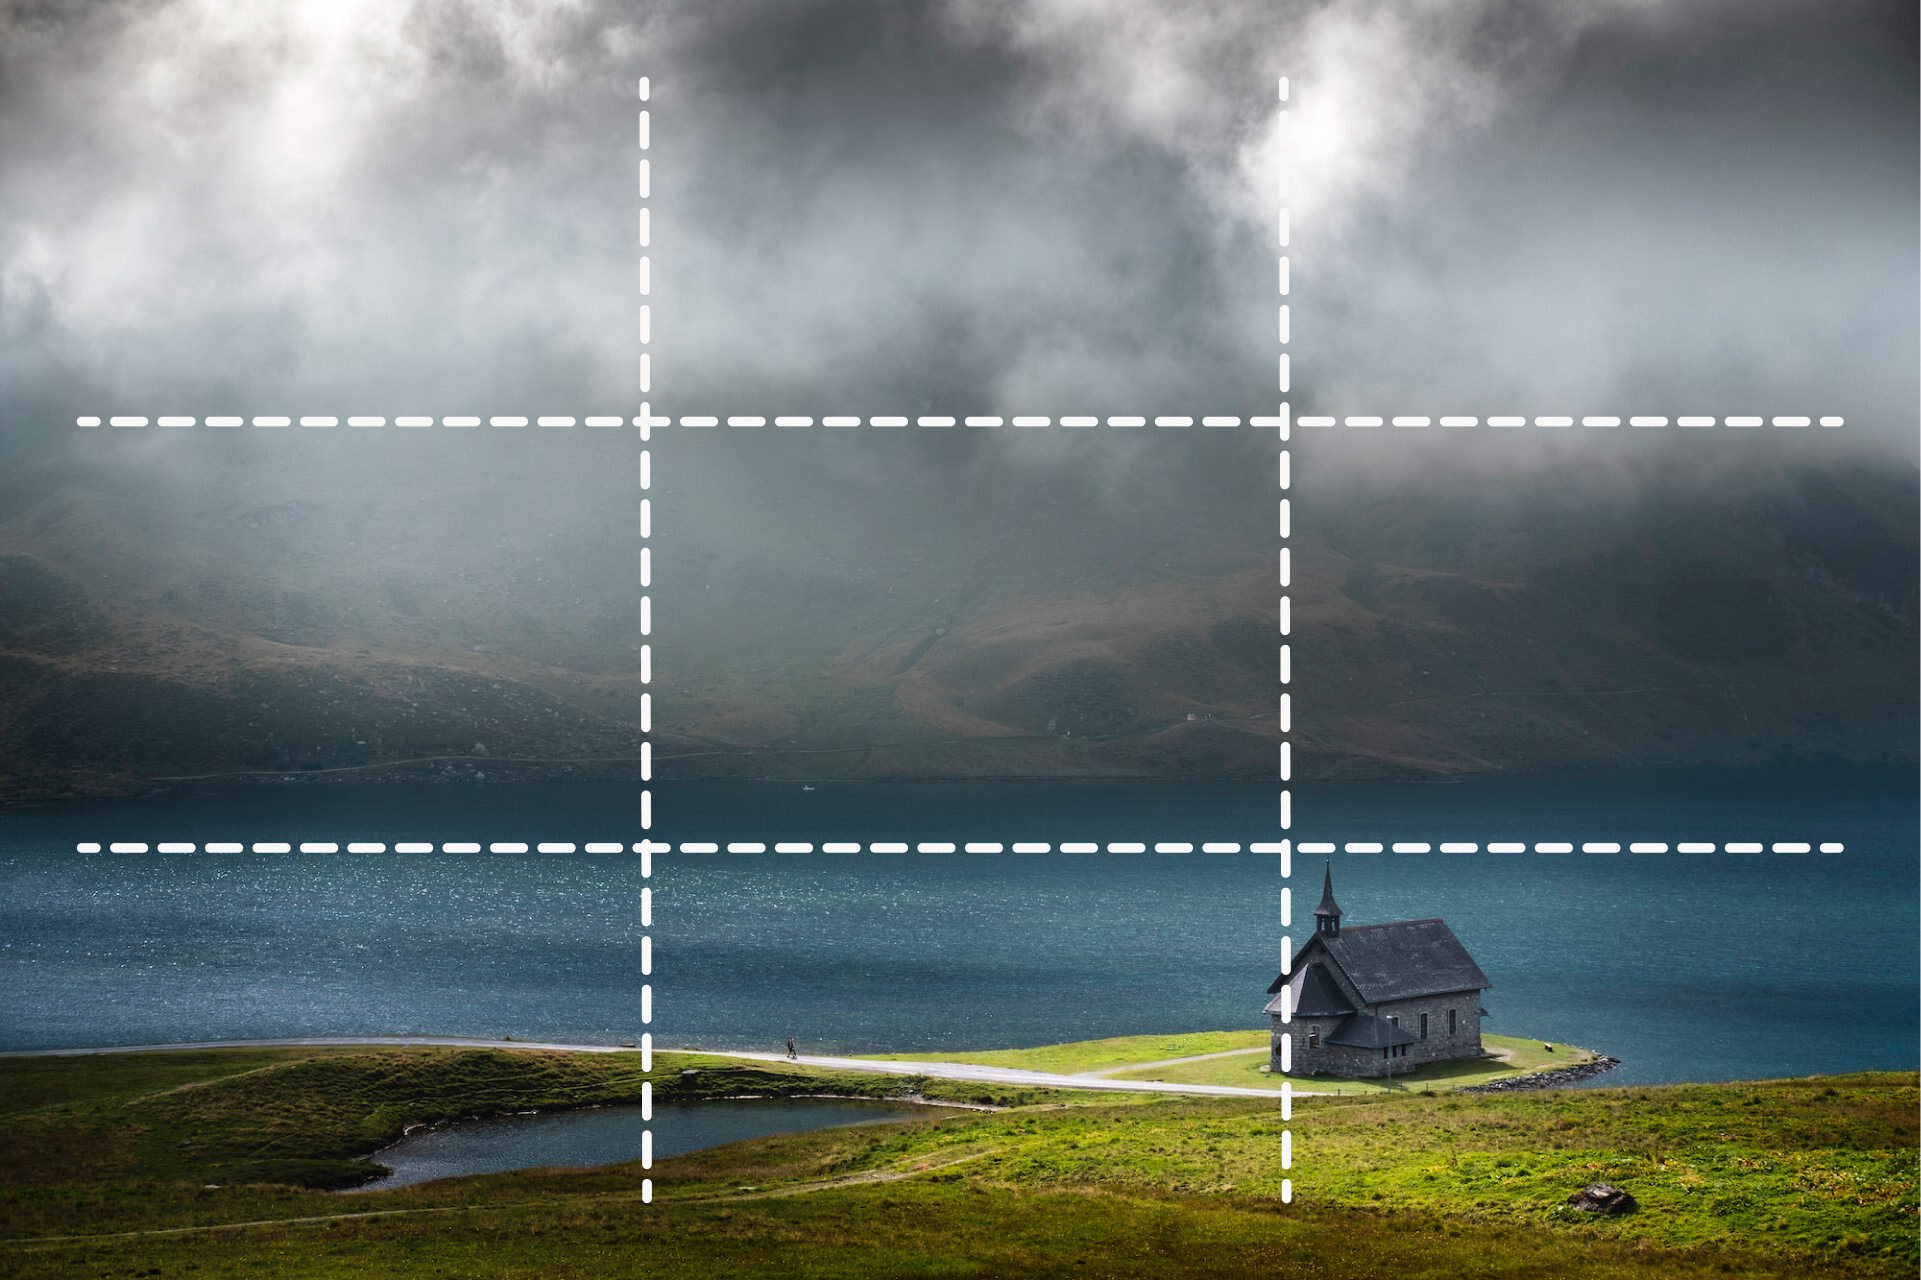 Compositional layout showing the rule of thirds in the scene